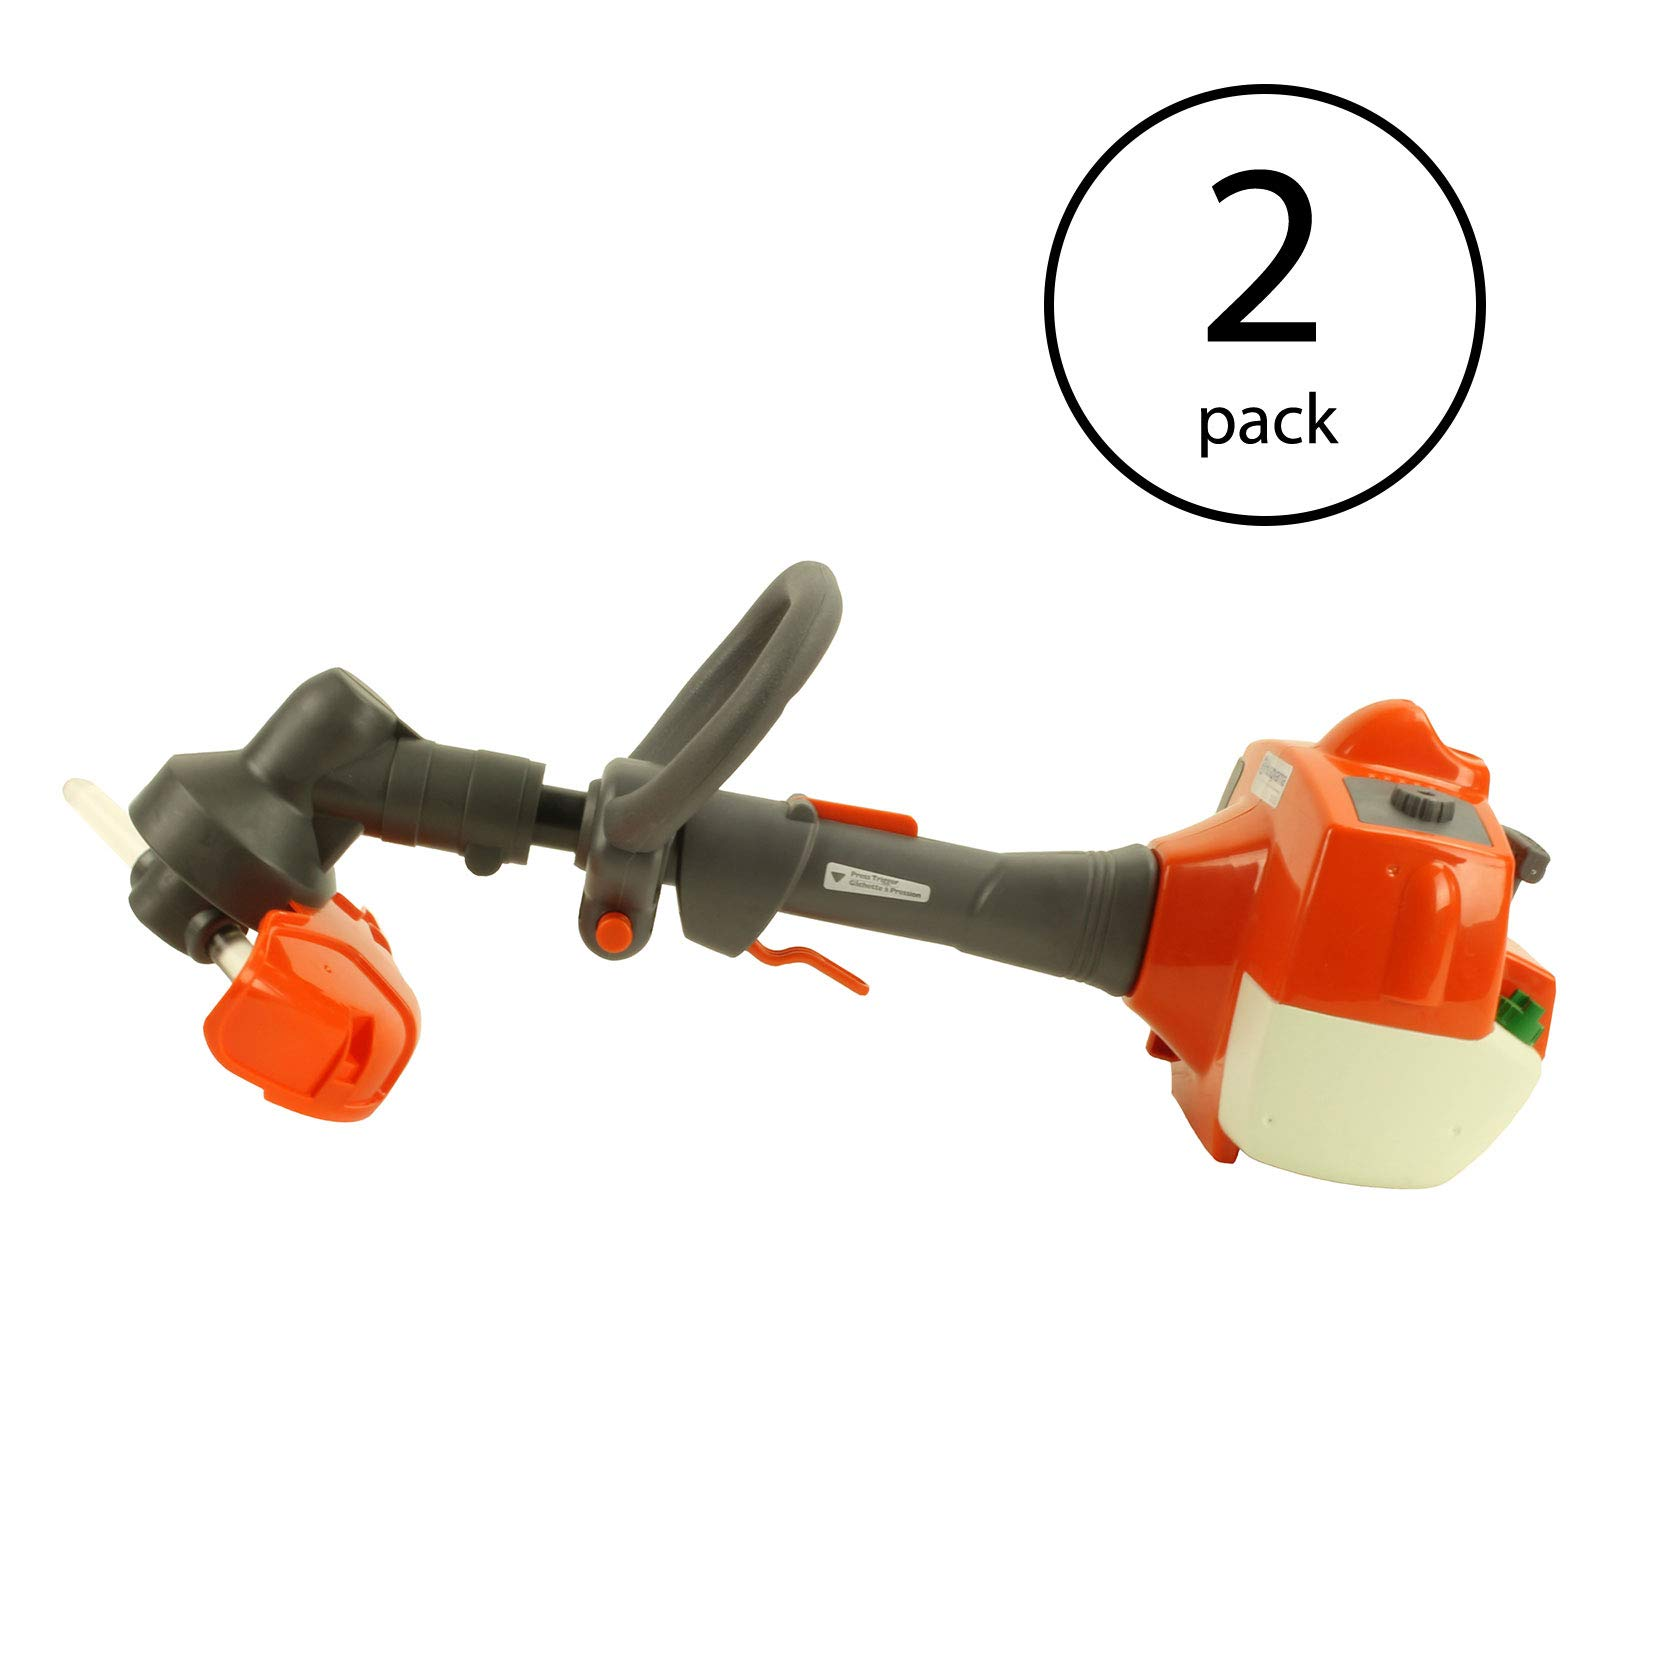 Husqvarna Kids Toy Battery Operated Lawn Trimmer Sound & Rotating Line (2 Pack)